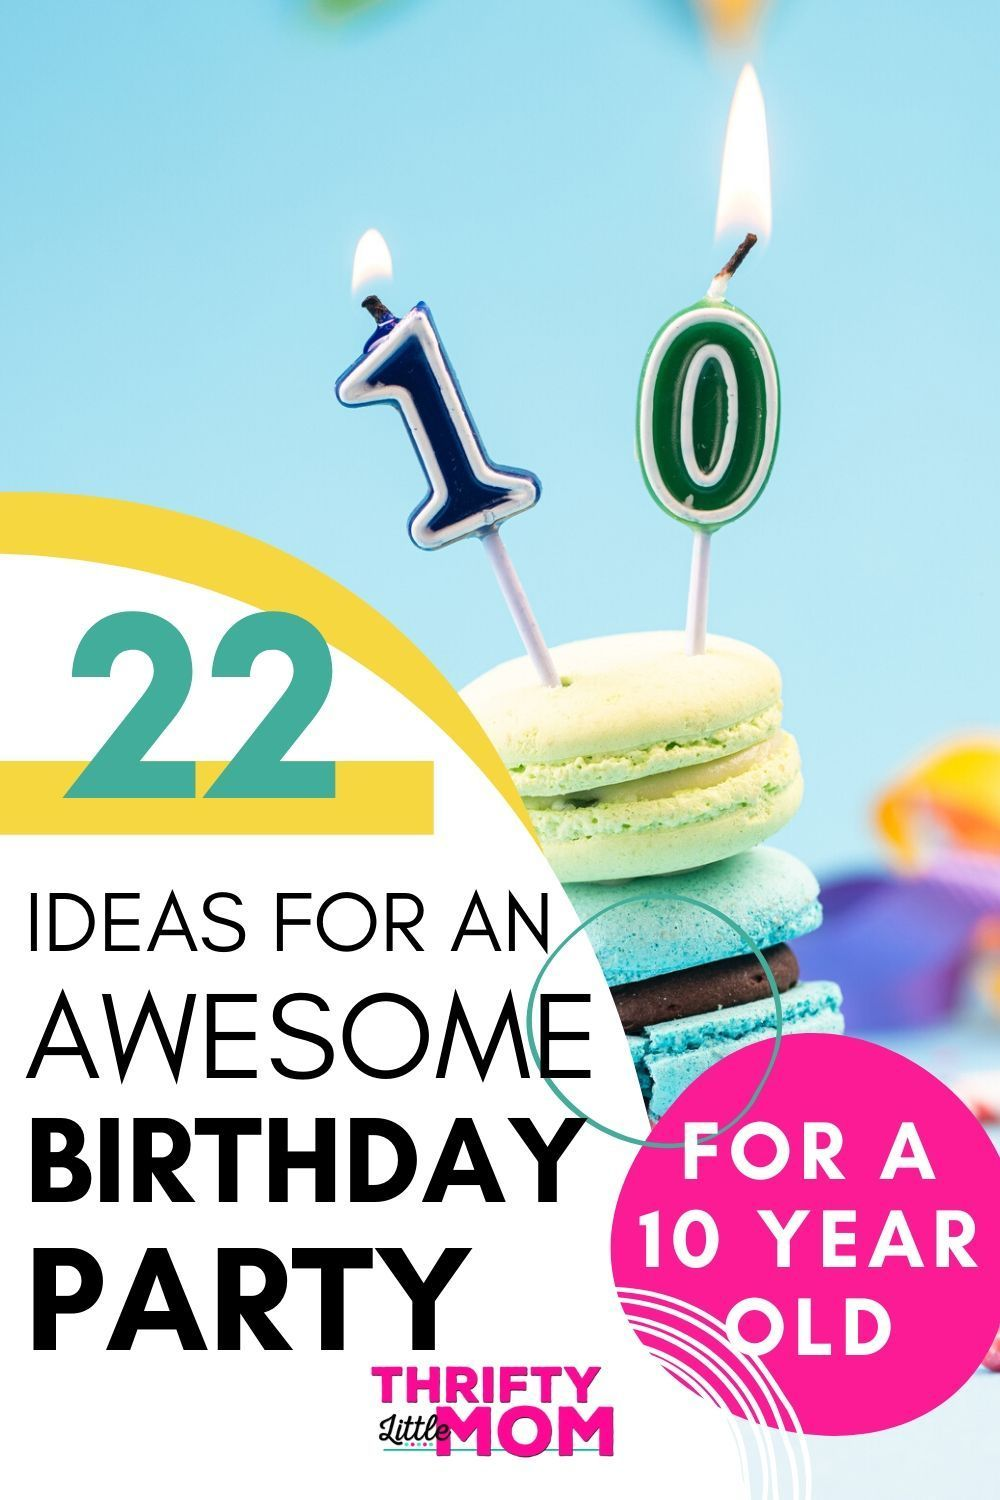 10 Year Old Birthday Party Ideas In 2020 Birthday Party Places Fun Birthday Party Diy Party Food